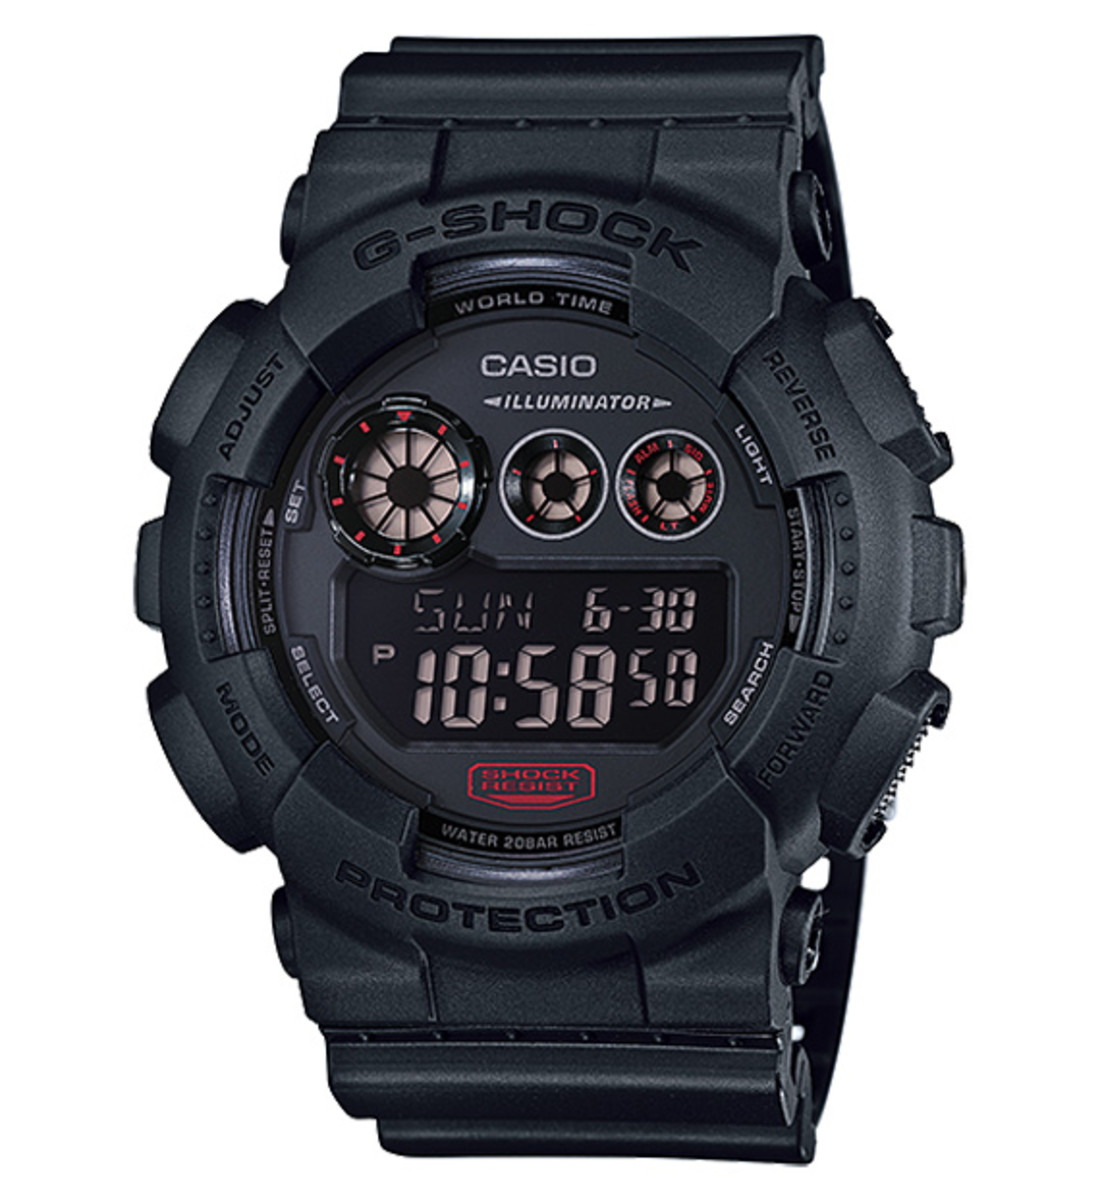 Casio G-Shock GD-120MB-1JF